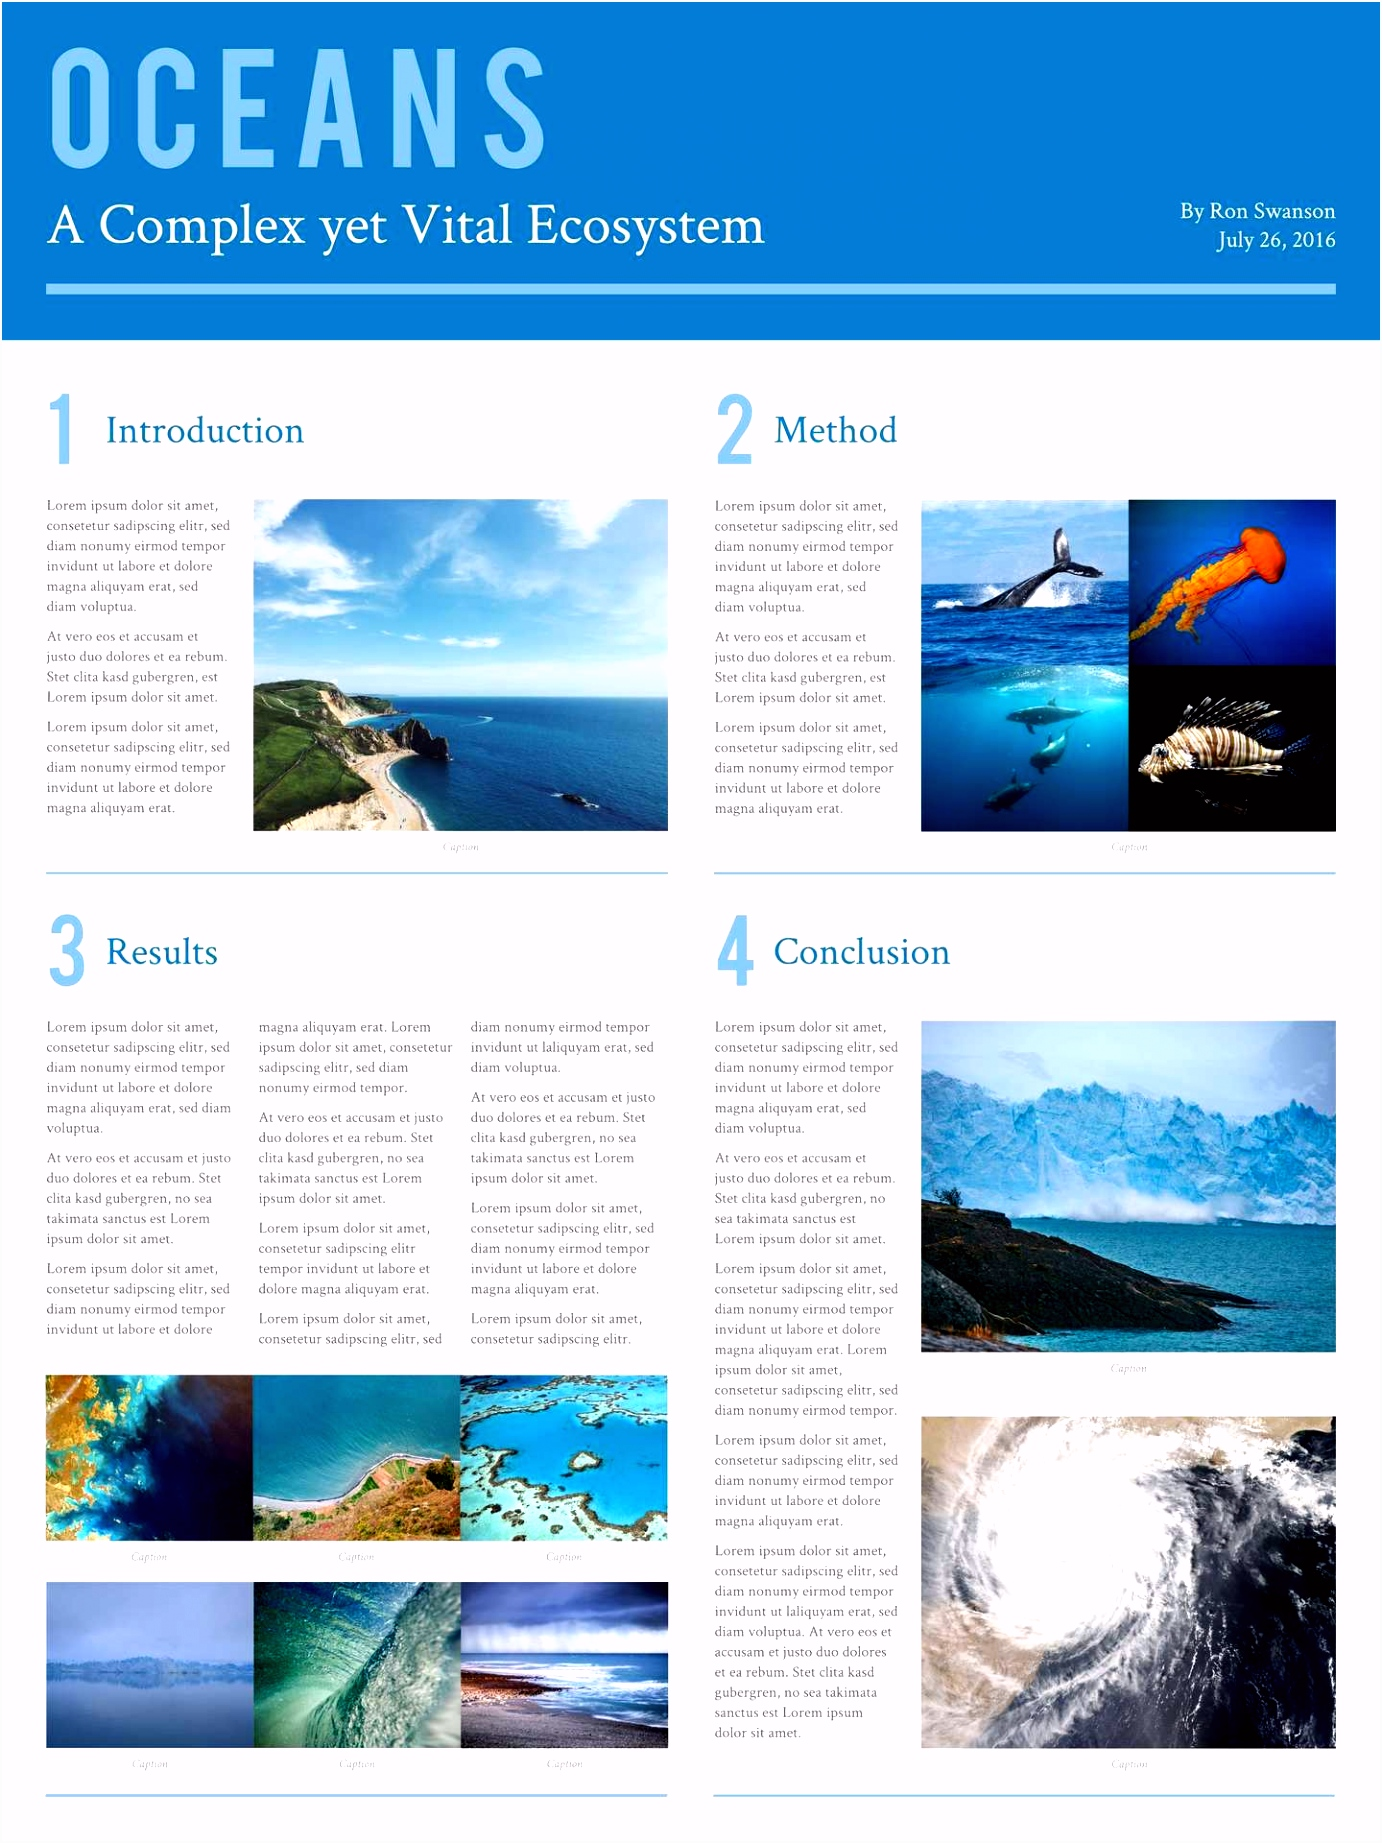 Flyer formate Vorlagen Free Poster Templates & Examples [15 Free Templates] H8go16gka3 J6wqm4fef6